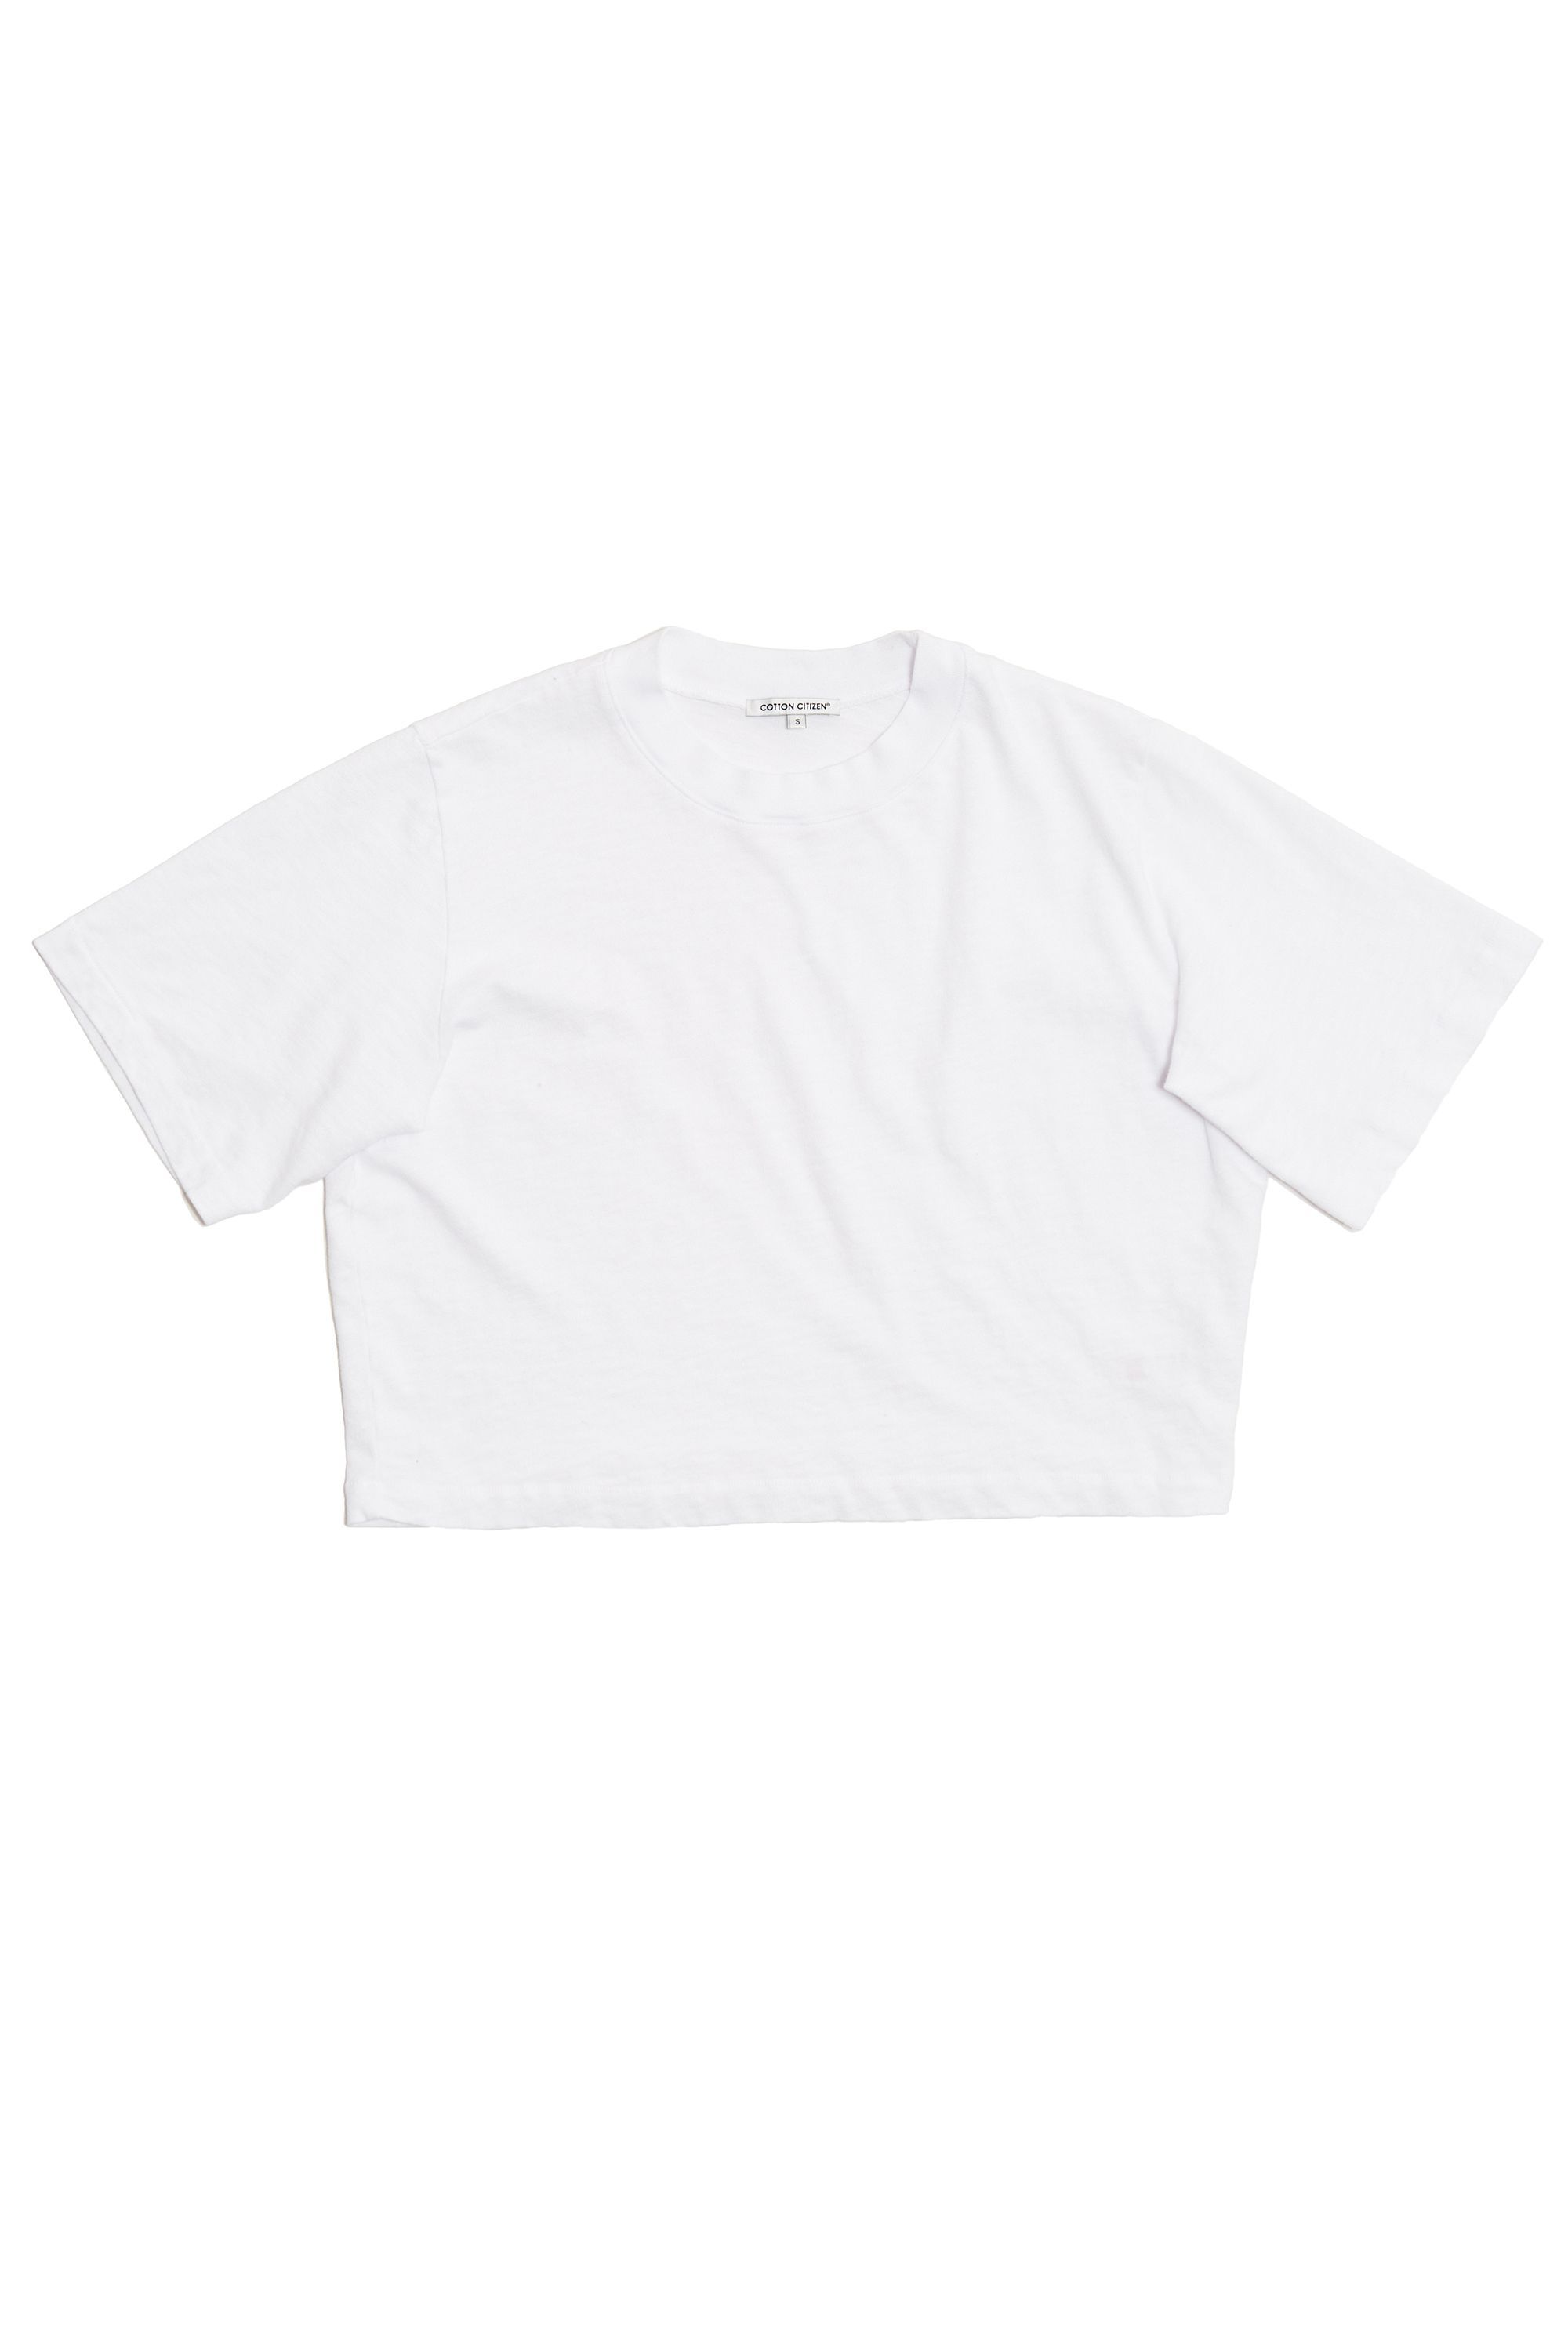 b9744d7b1c5 10 Best White T Shirts - Perfect White Tee Shirts To Add to Your Summer  Wardrobe